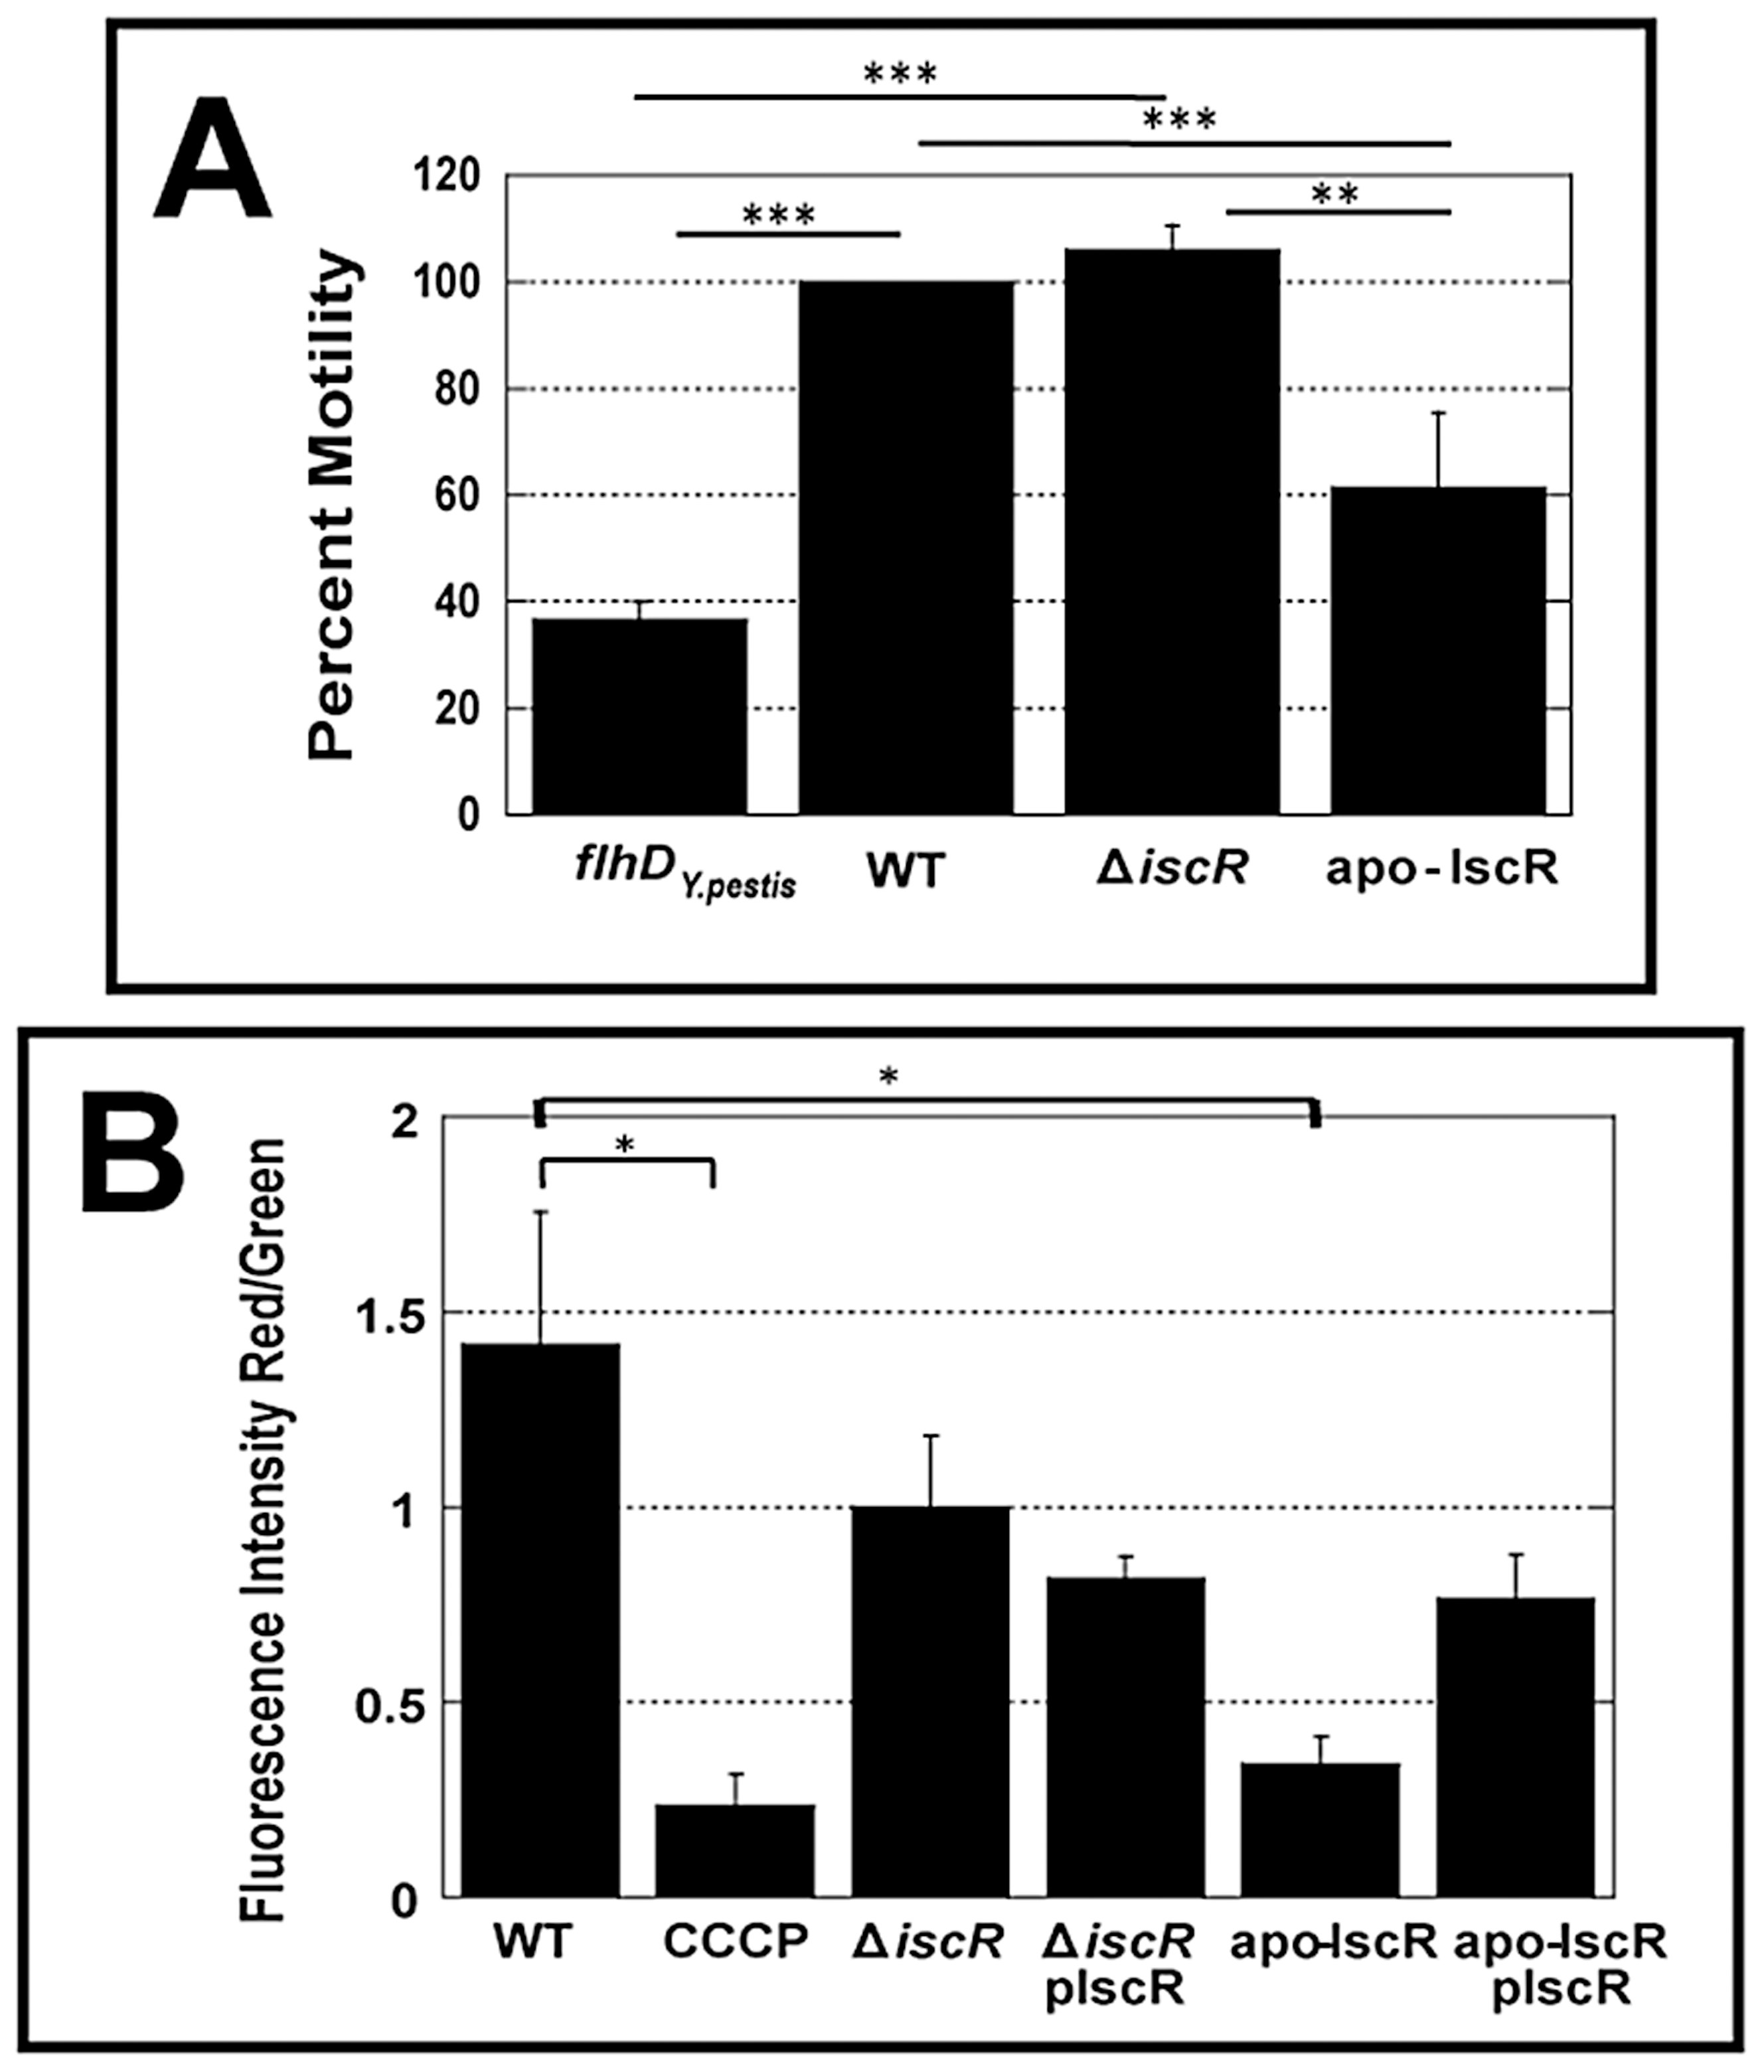 The apo-IscR mutant strain displays decreased motility and disruption of electrical potential.